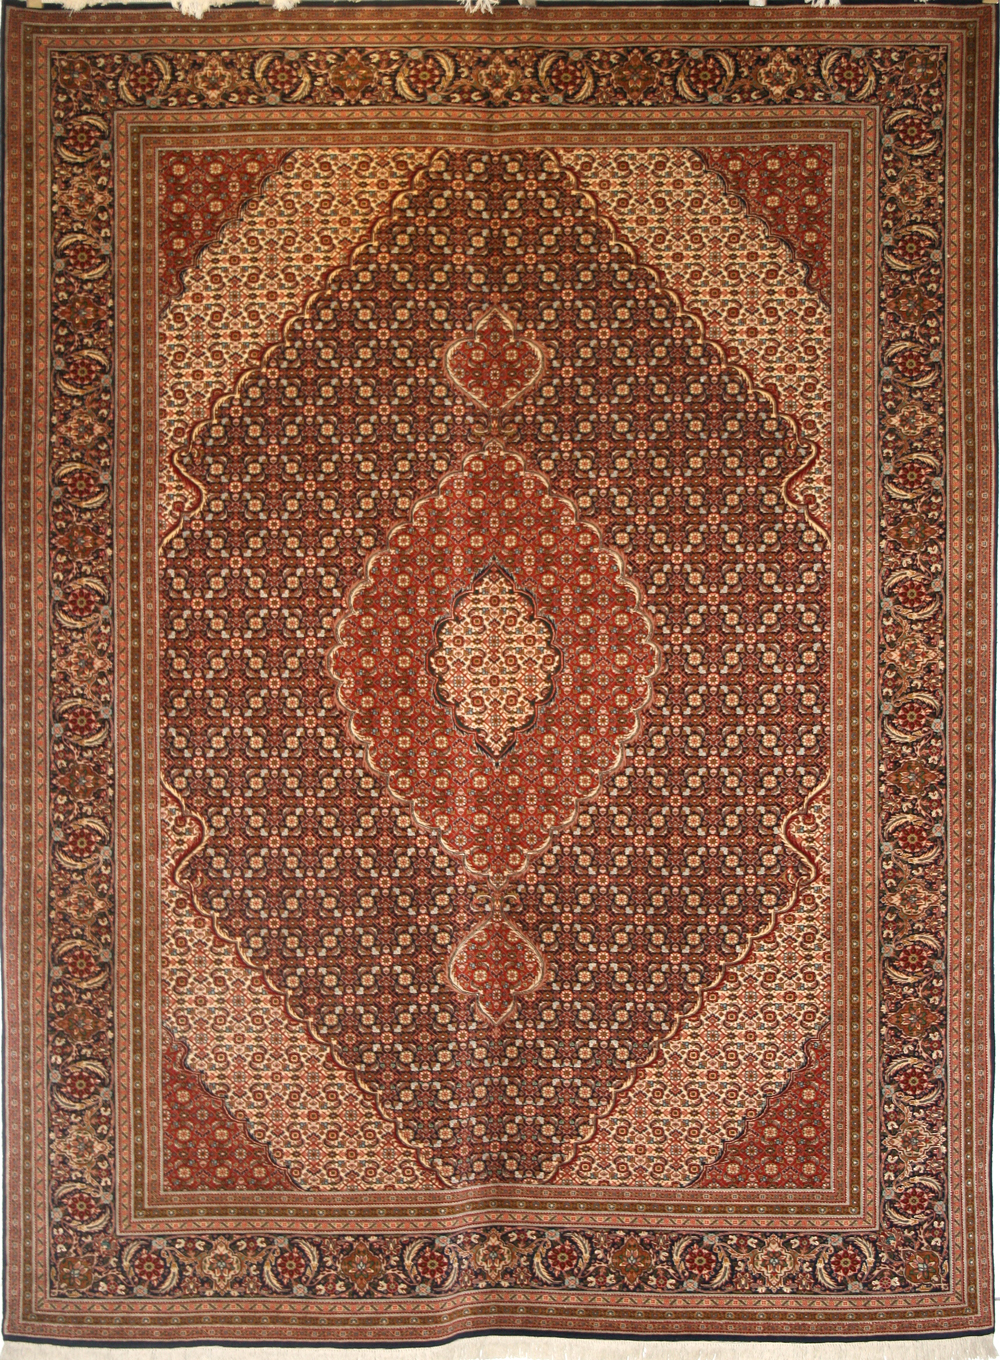 Captivating Tabriz Rug An Indian Rug Knotted To A Tabriz Design